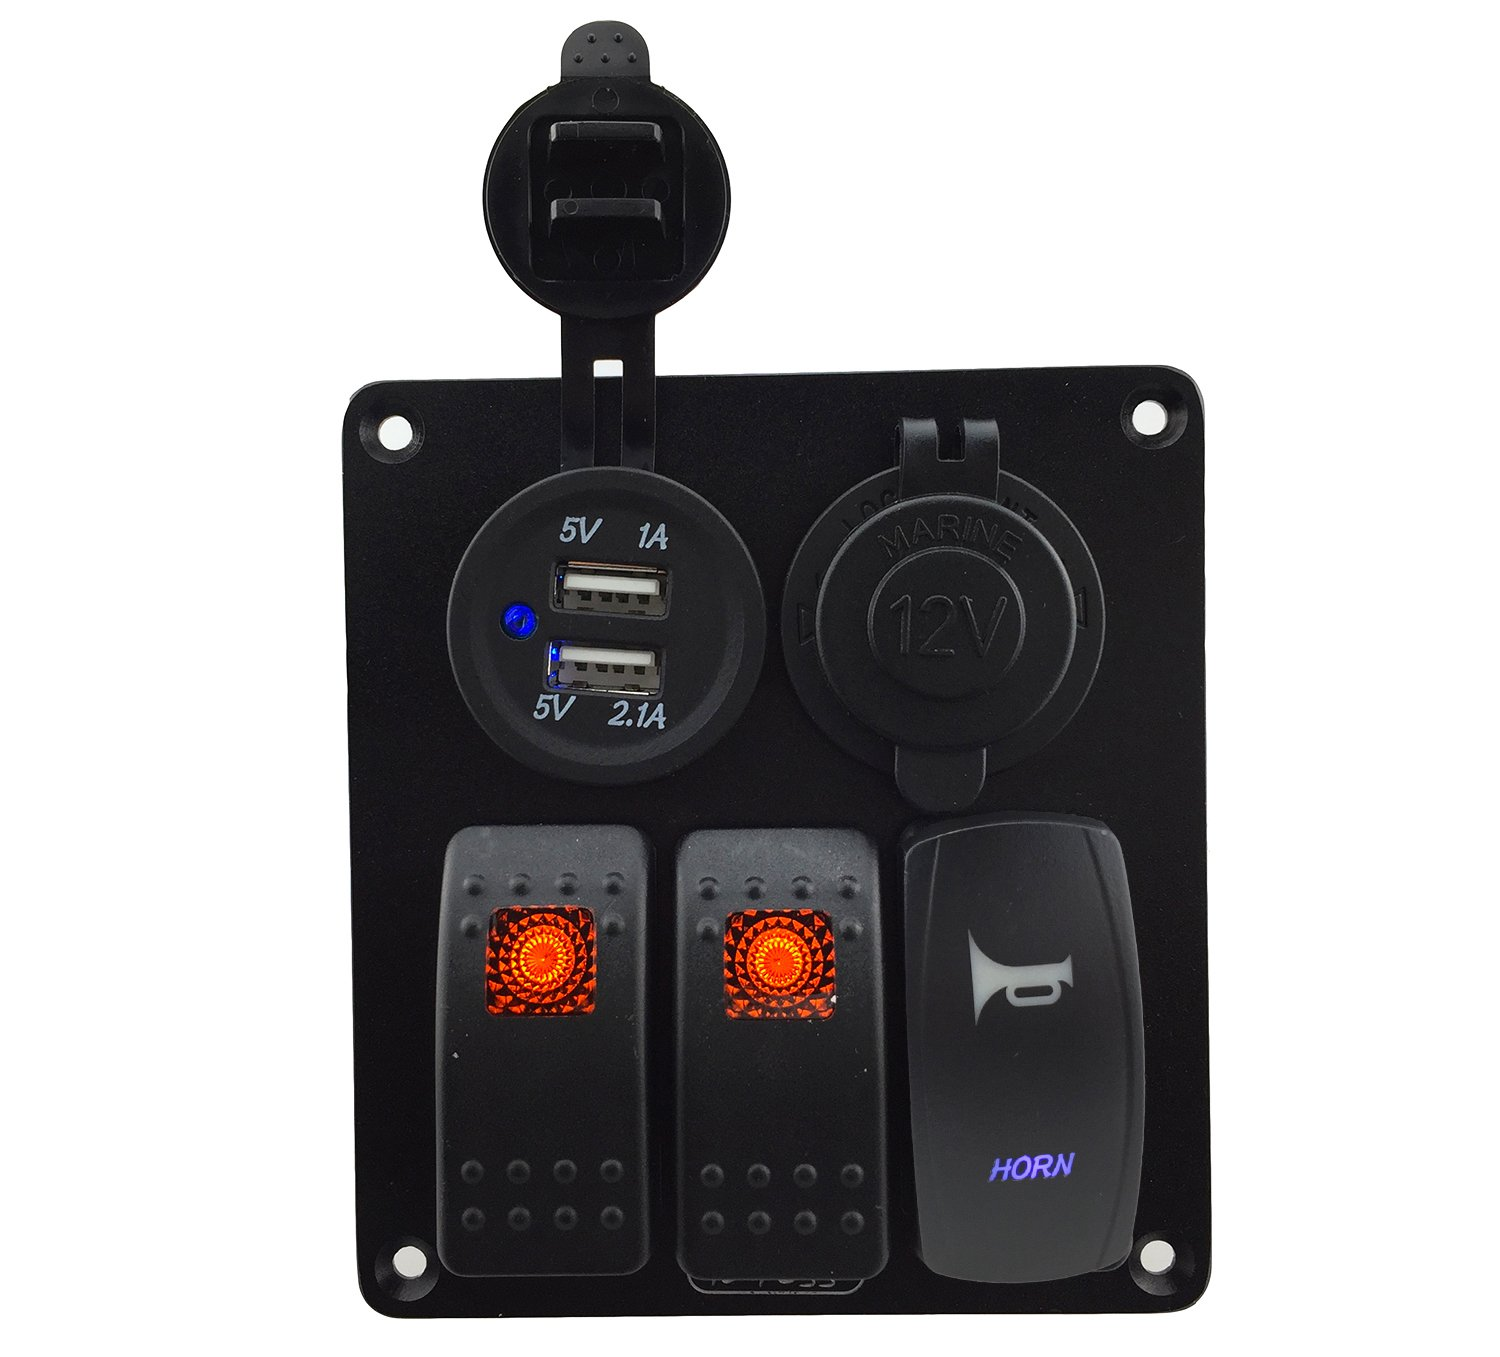 IZTOSS 3 gang rocker switch and horn switch panel with power socket 3.1A dual USB wiring kits and Decal Sticker Labels DC12V/24V for Marine Boat Car Rv Vehicles Truck orange led by IZTOSS